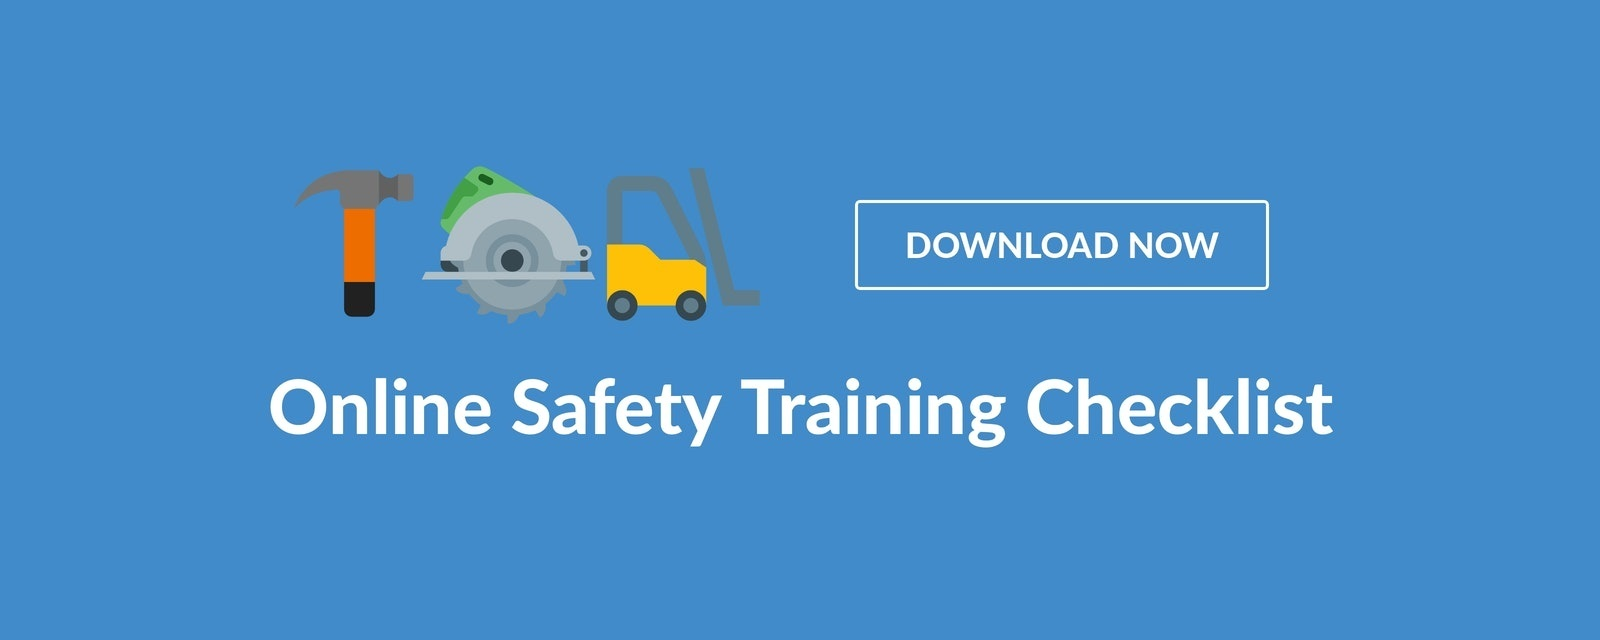 Online Safety Training Checklist